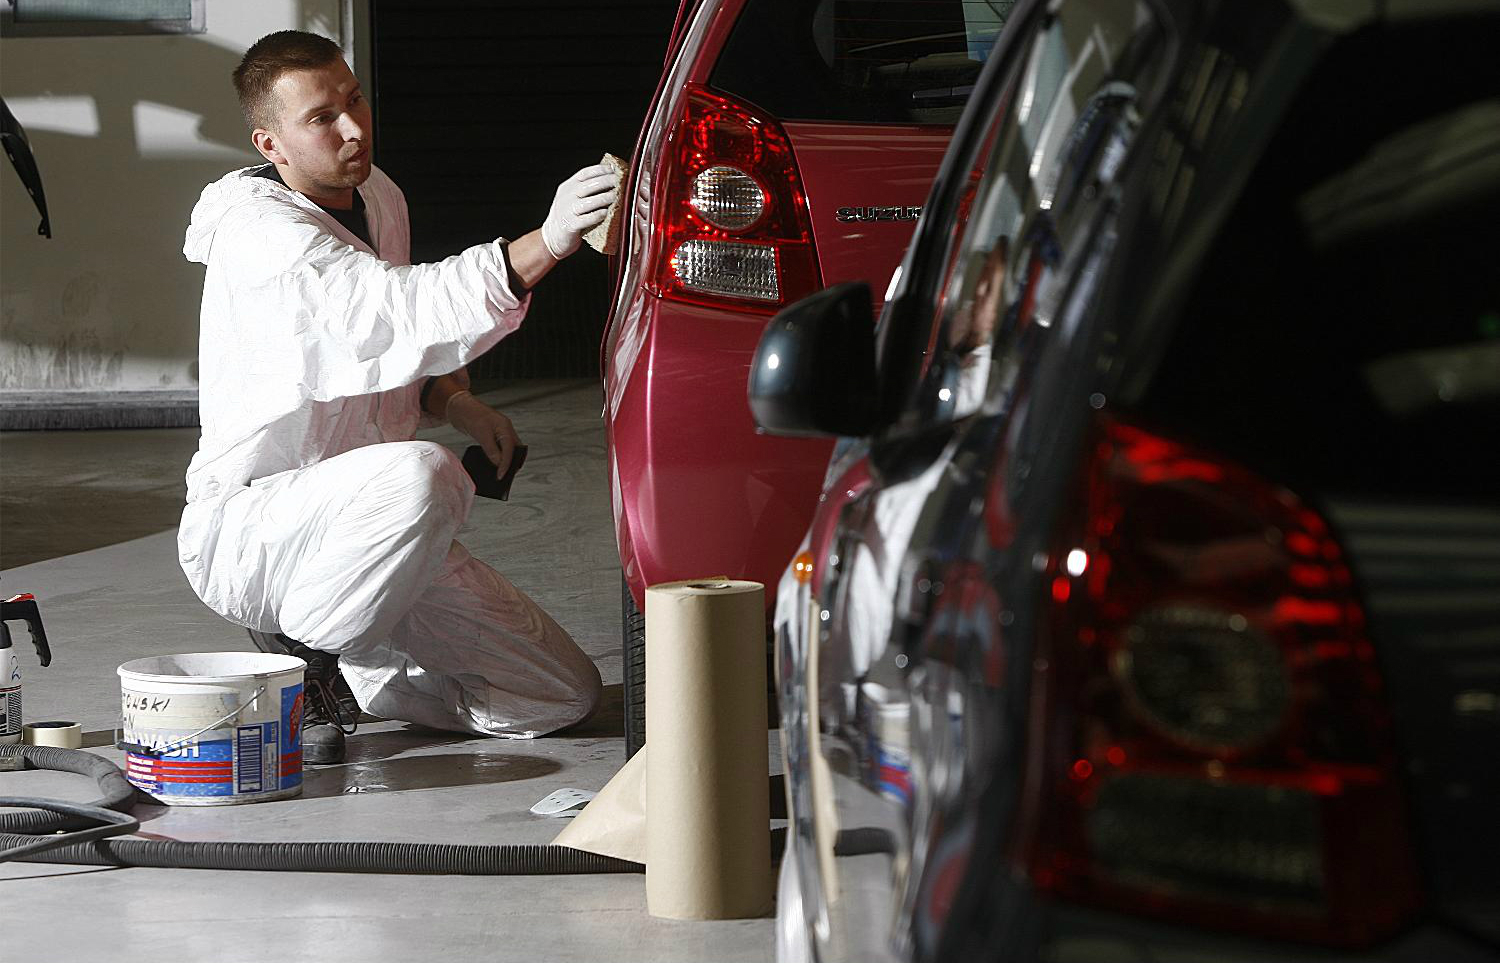 Work carried out by manufacturer-approved bodyshops is guaranteed to minimum standards